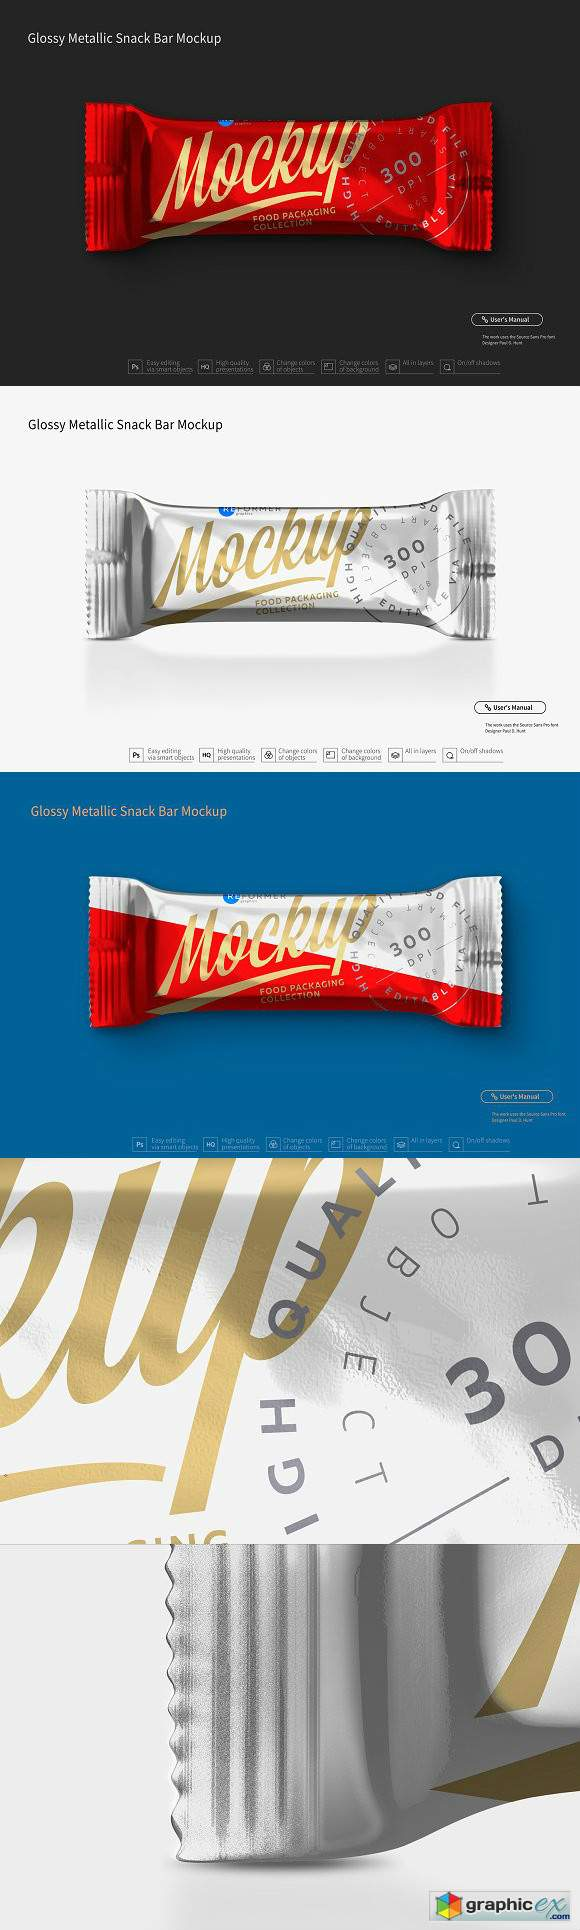 Glossy Metallic Snack Bar Mockup